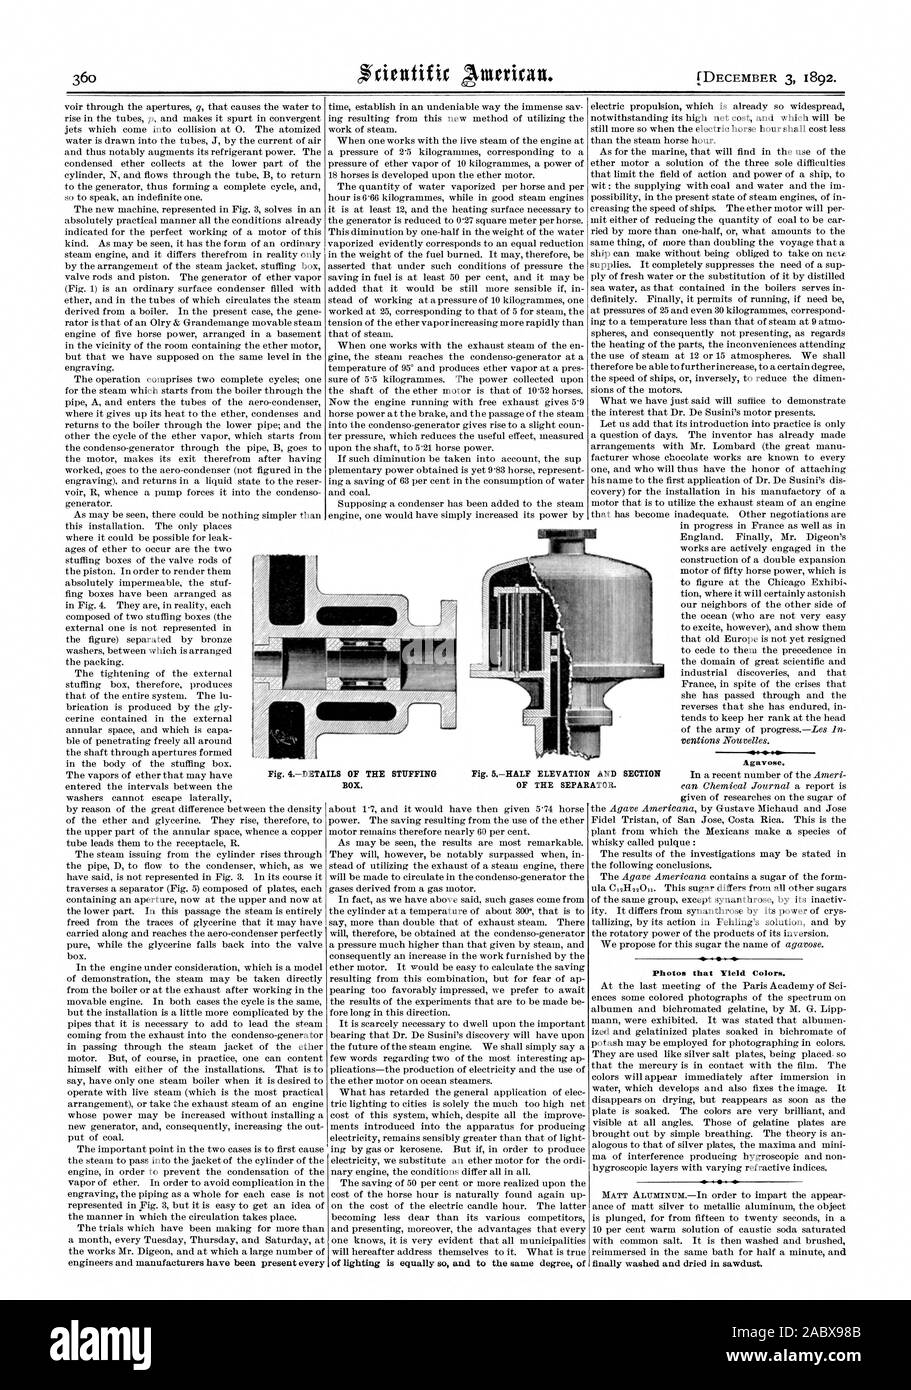 of lighting is equally s and to the same degree of Agavose. Photos that Yield Colors. finally washed and dried in sawdust. Fig. 4DETAILS OF THE STUFFING BOX. Fig. 5HALF ELEVATION AND SECTION OF THE SEPARATOR., scientific american, 1892-12-03 Stock Photo